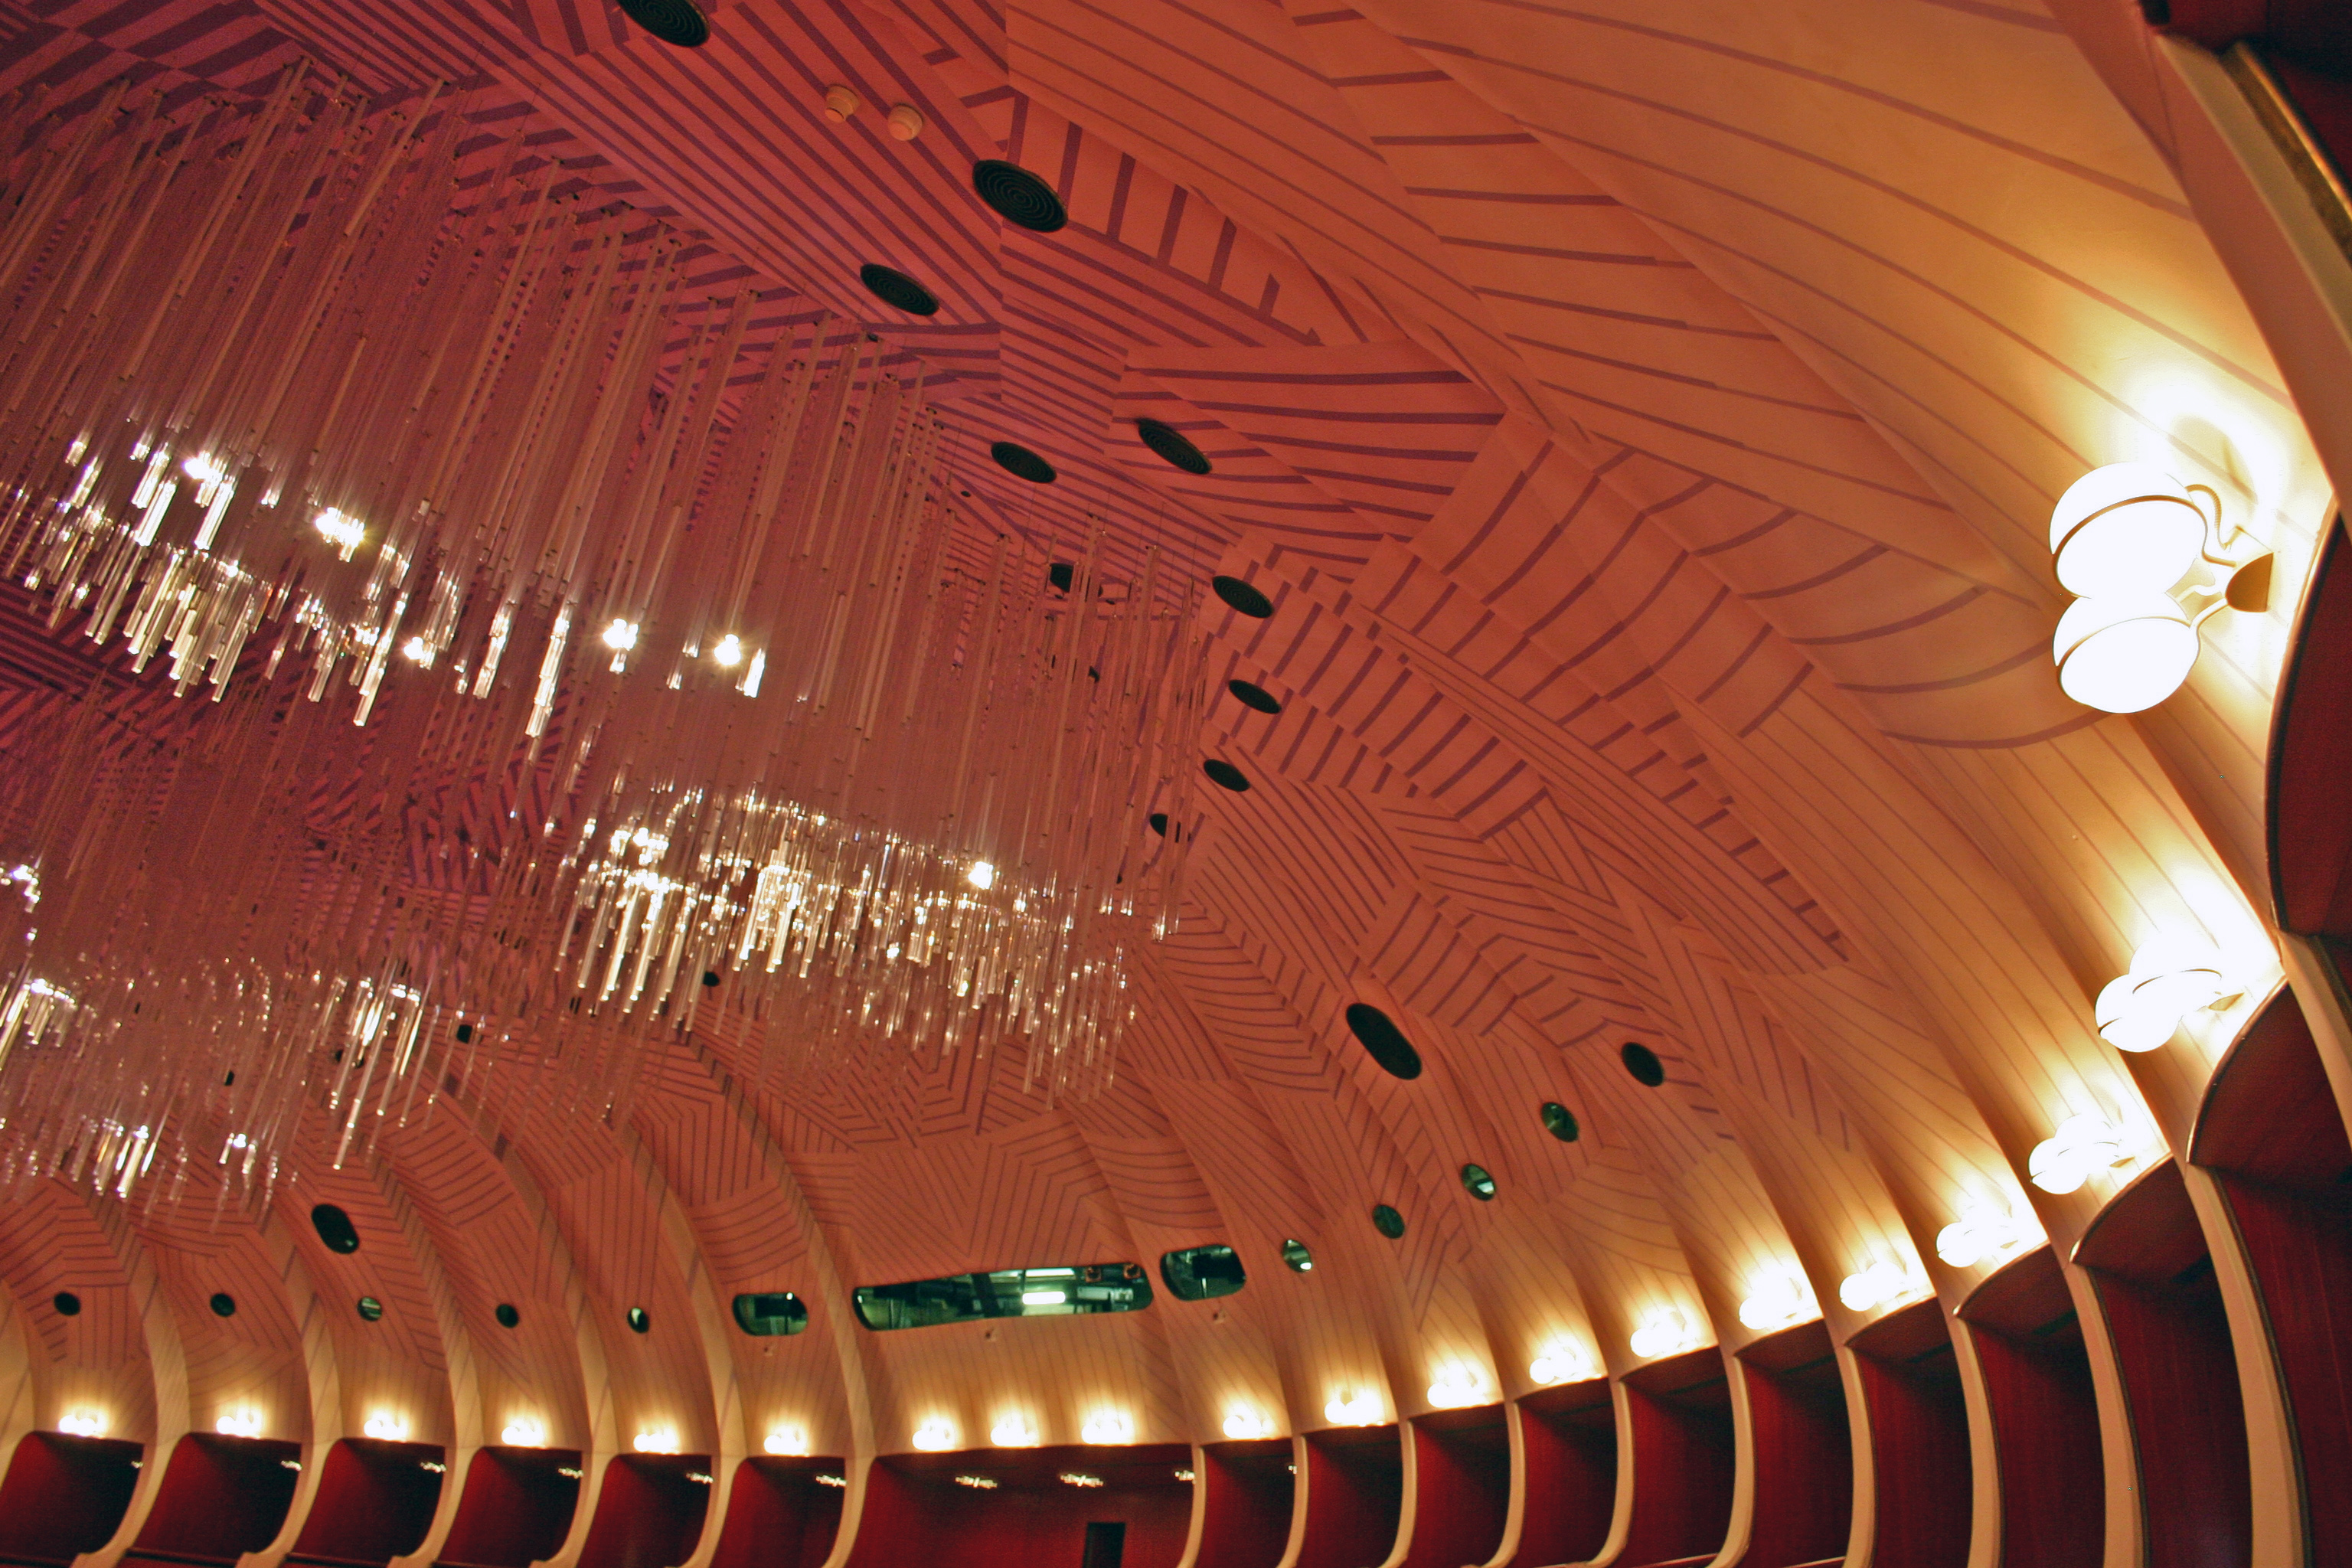 The wooden dome of the auditorium in its typical chromatic gradation from ivory to dark indigo